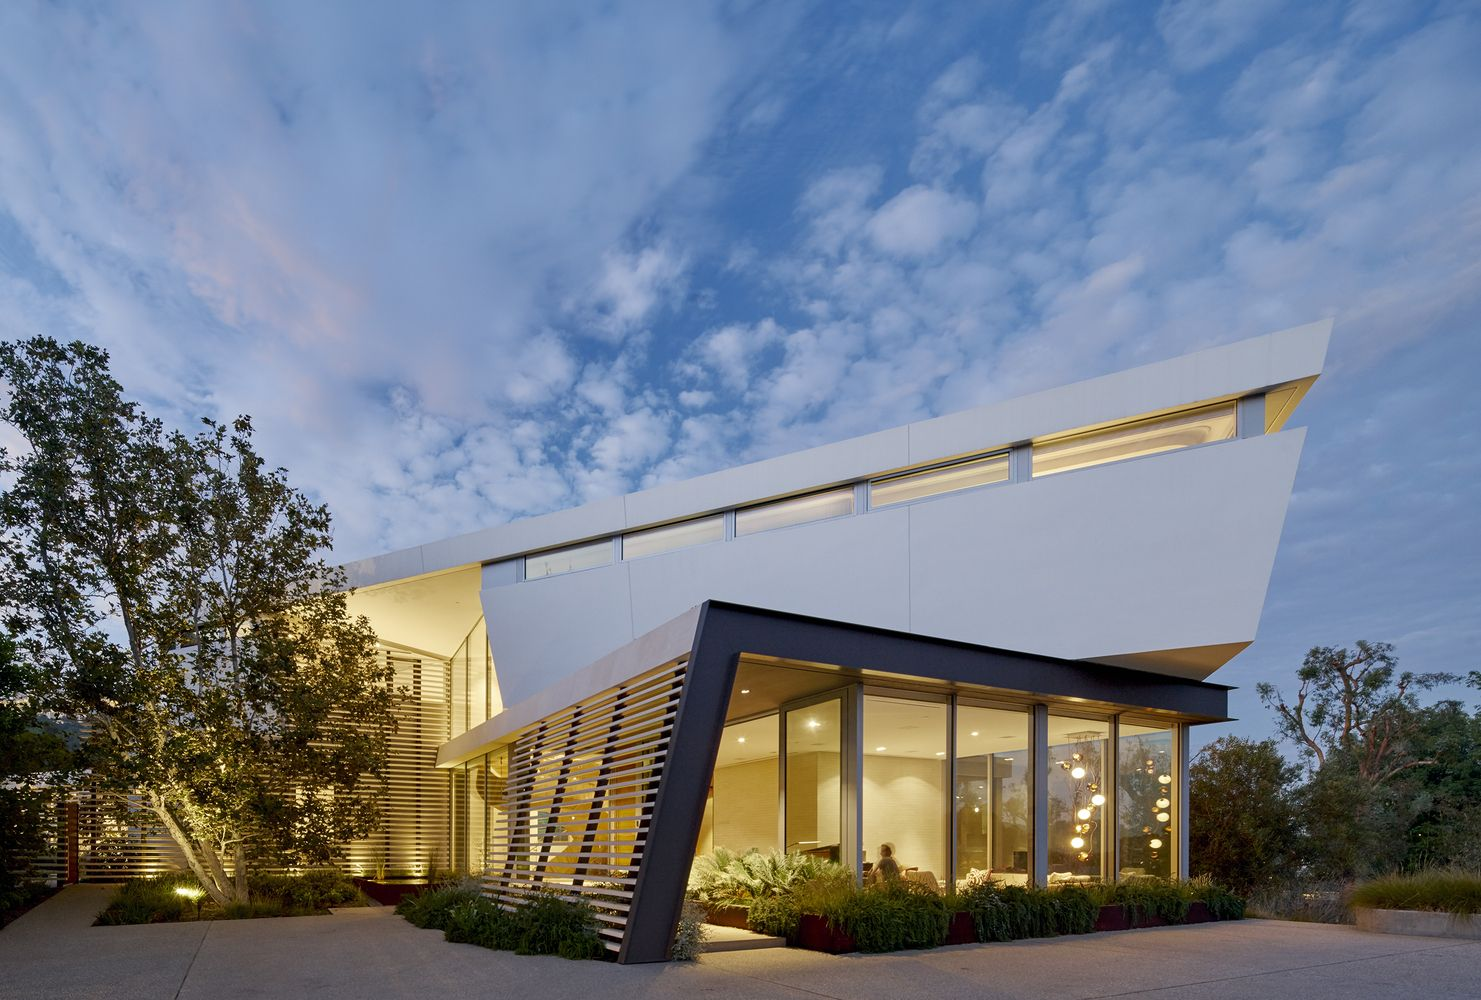 Top Residential Architects Gallery Of Tree Top Residence  Belzberg Architects  2  Trees